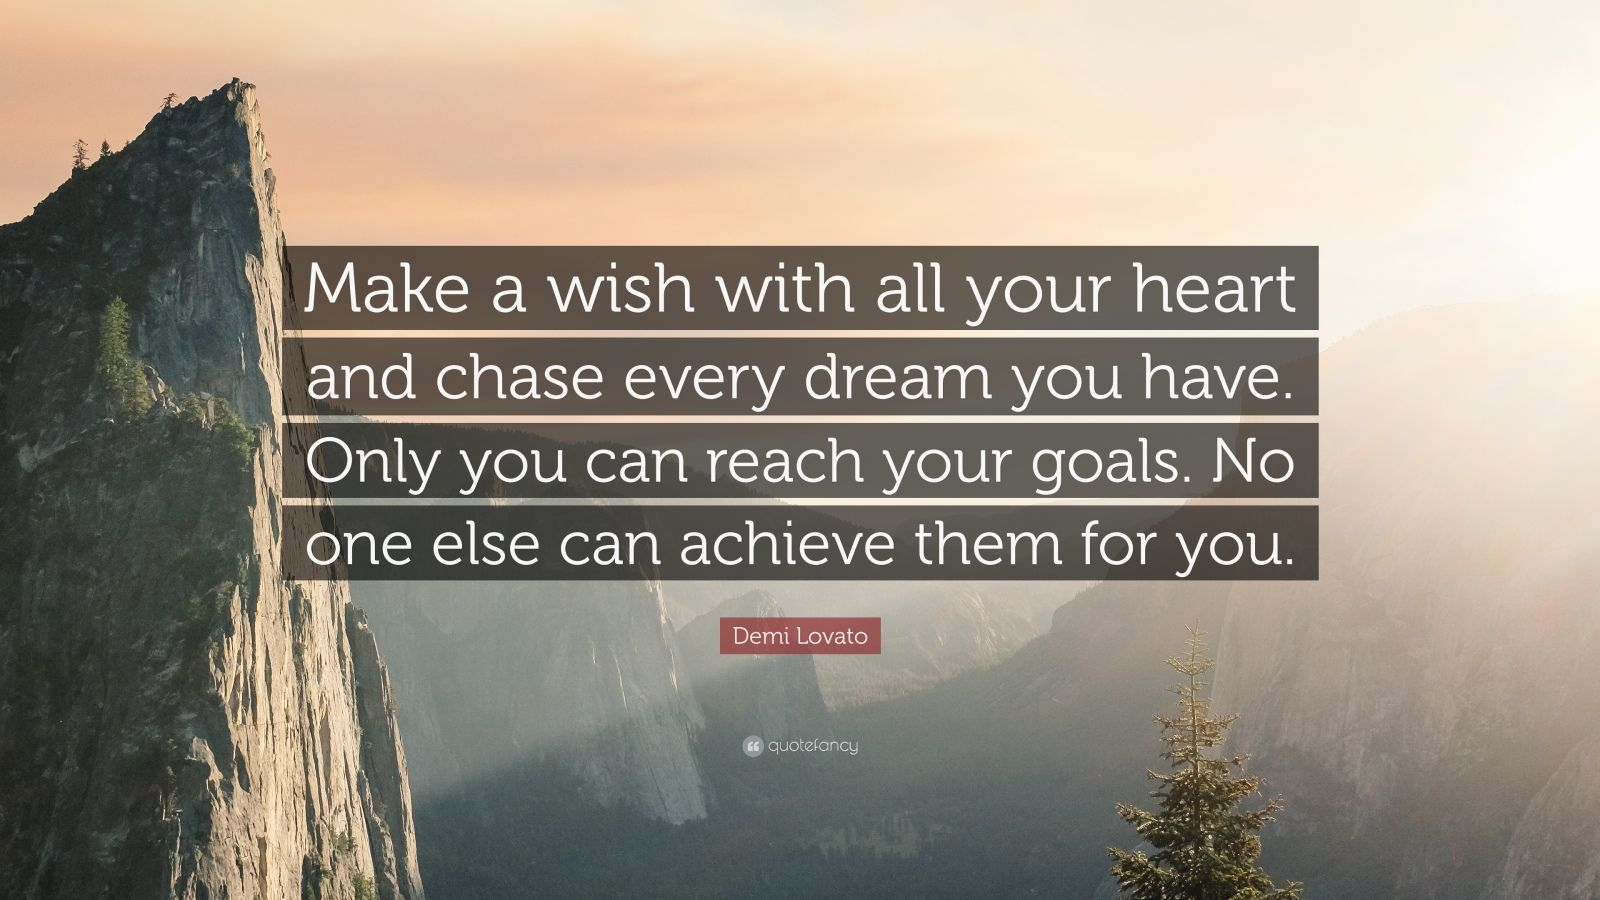 """Demi Lovato Quote: """"Make a wish with all your heart and chase every dream you have. Only you can reach your goals. No one else can achieve them for you."""""""